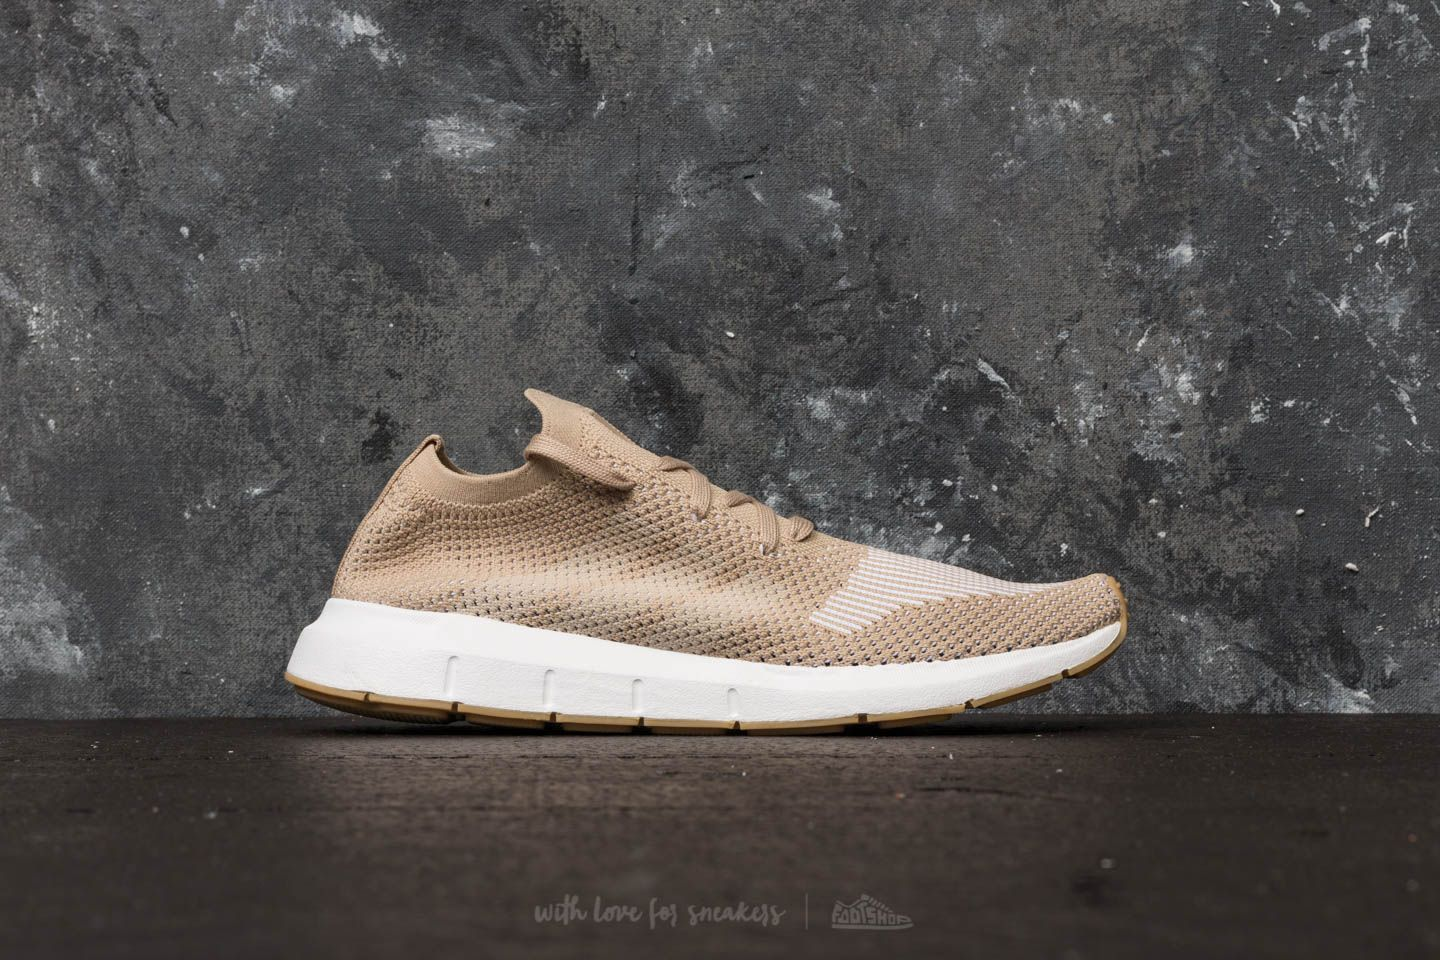 46398dd08 adidas Swift Run Primeknit Raw Gold  Off White  Ftw White  fashion  shoes   shoesaddict  schuhe  design  boots  runningshoes  sneakers  footwear  foot  ...